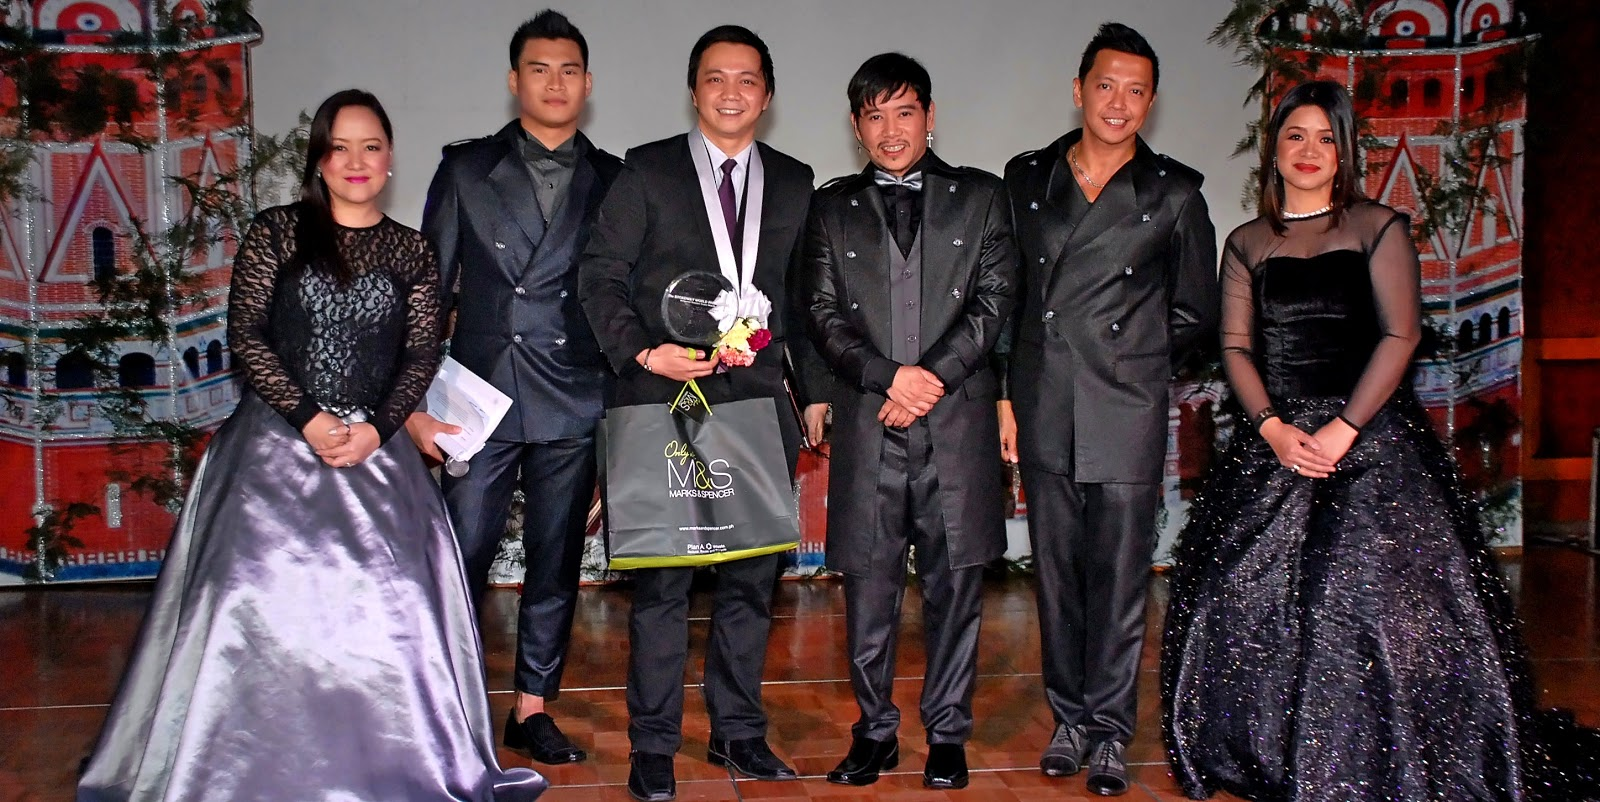 BroadwayWorld PH Receives an Award for Promoting Original Filipino Plays and Musicals